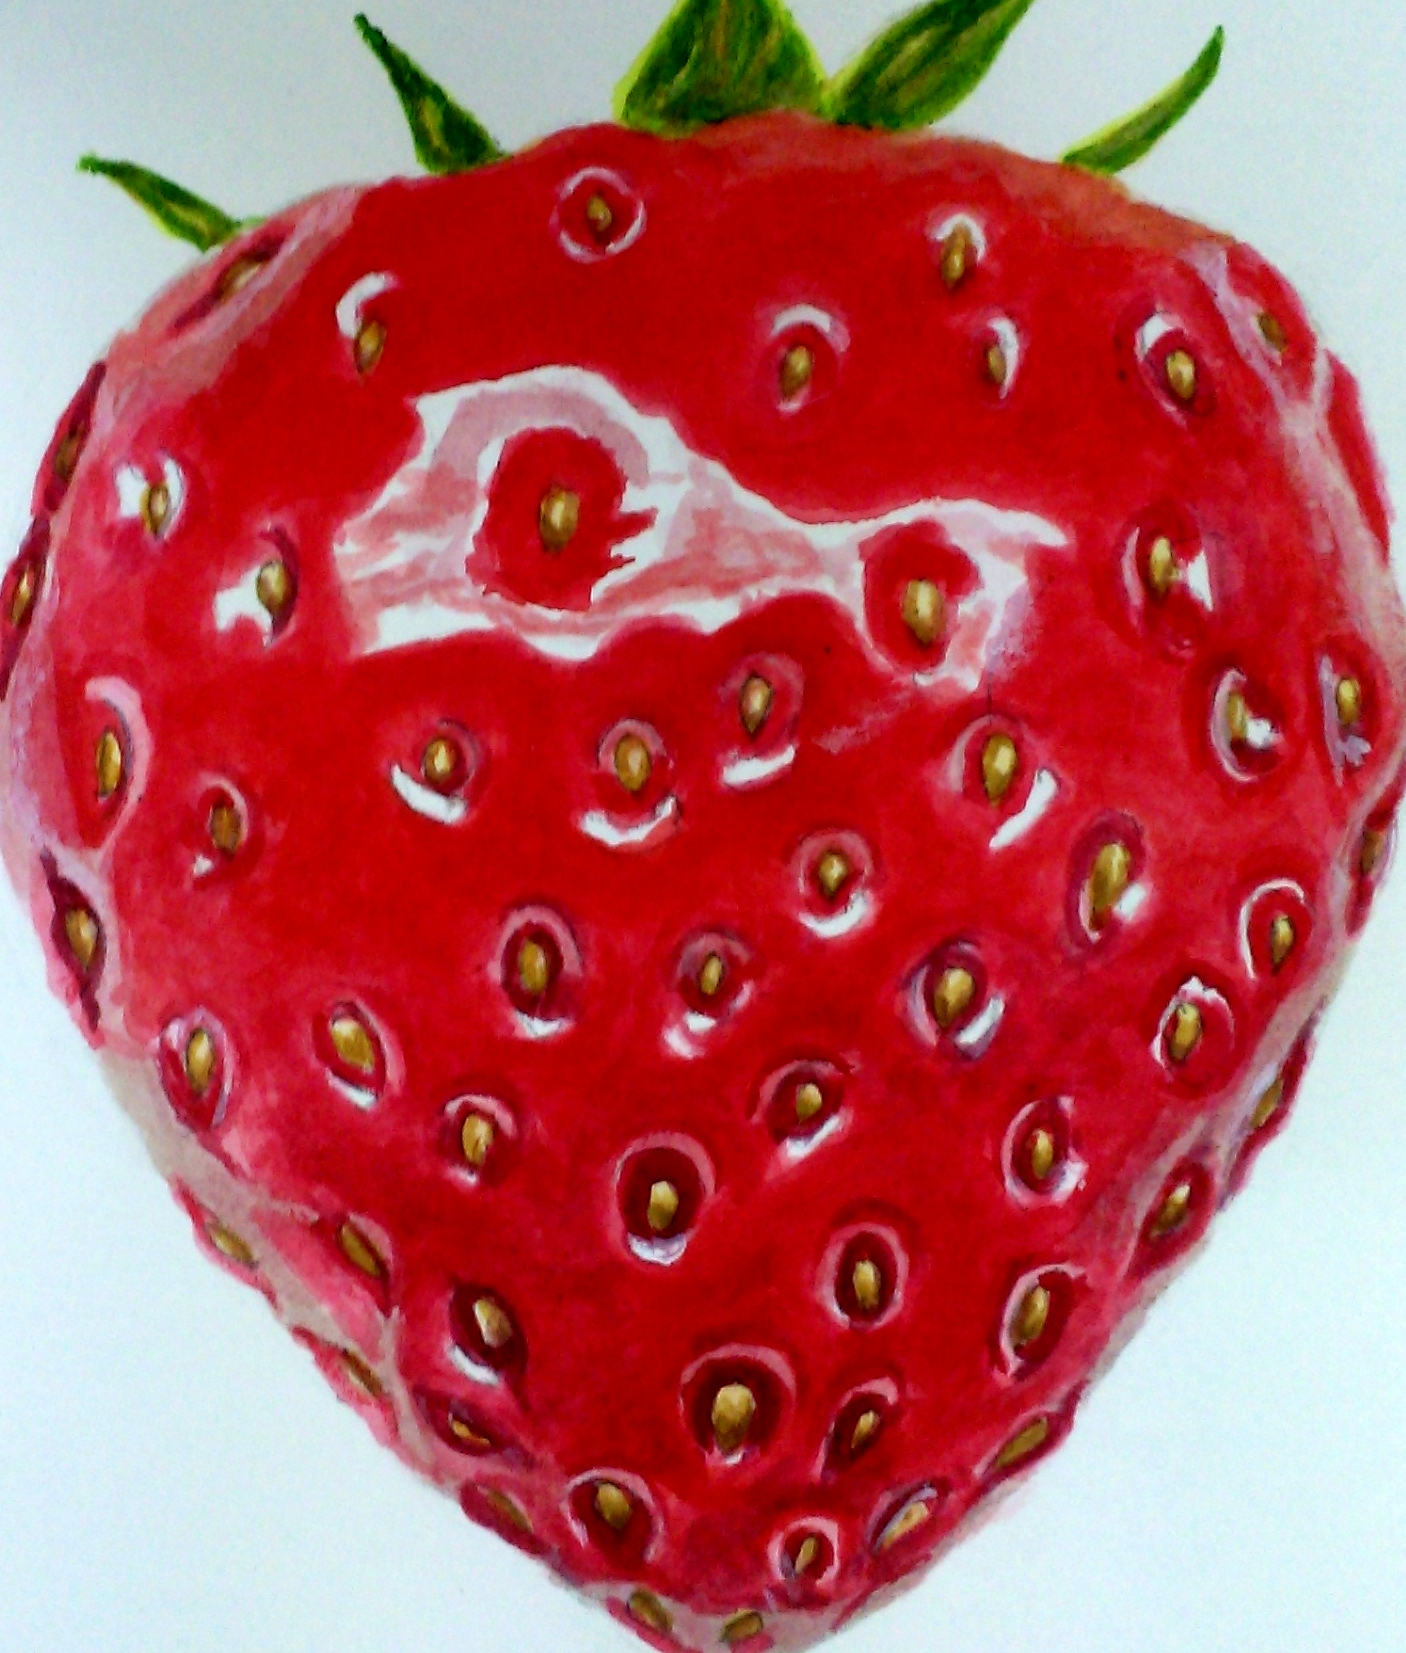 jene-strawberry